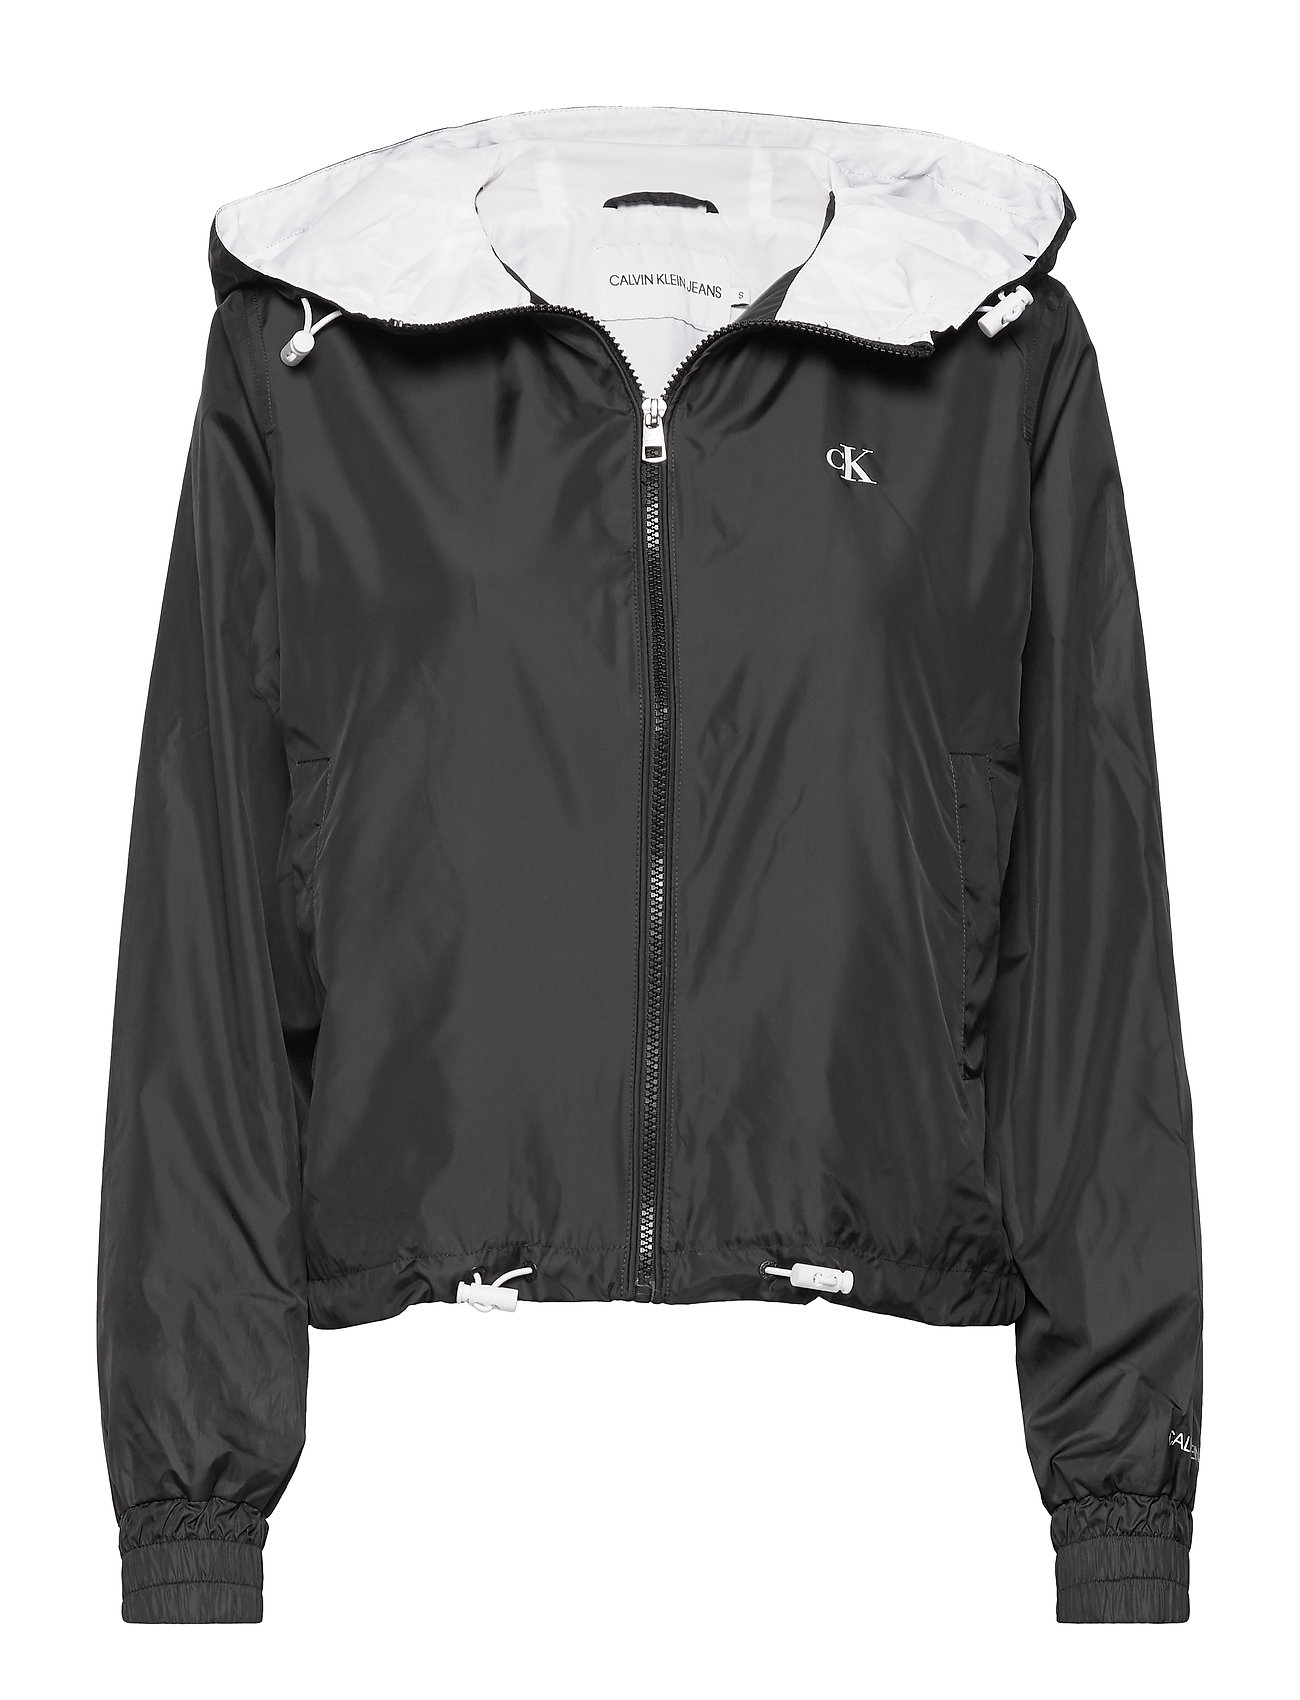 Calvin Klein Jeans POP COLOUR UNPADDED WINDBREAKER - CK BLACK/BRIGHT WHITE